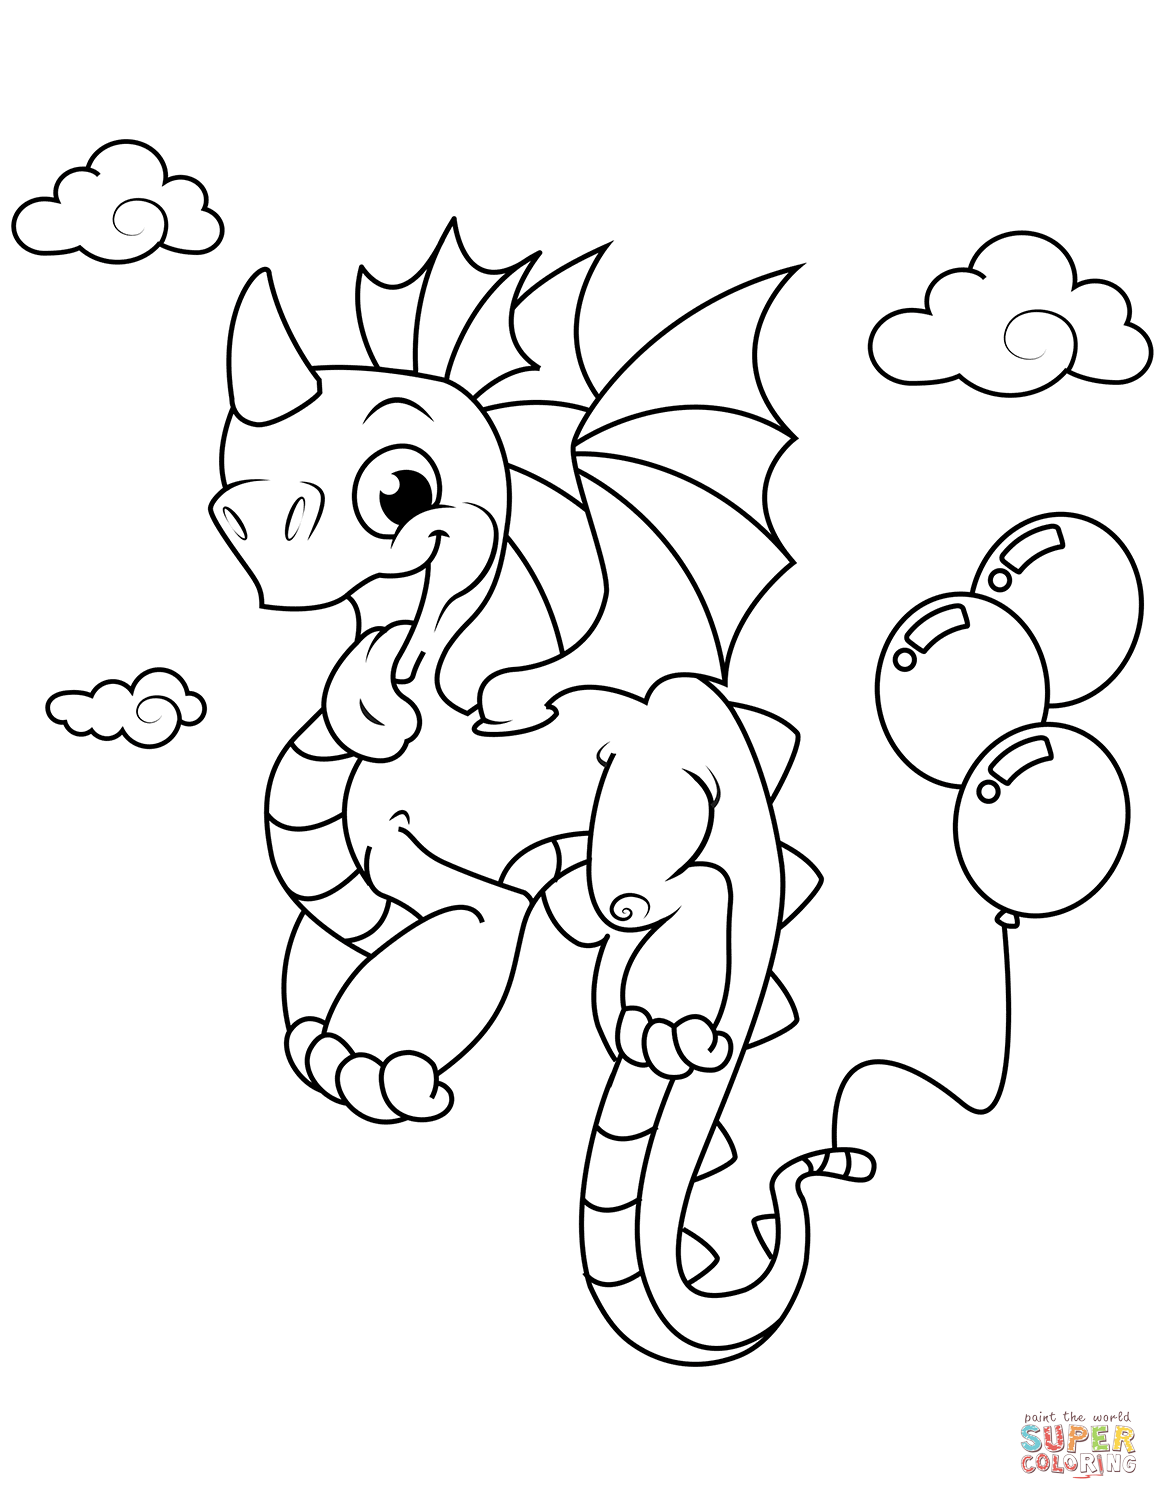 Cute Baby Dragon Coloring Pages At Getcolorings